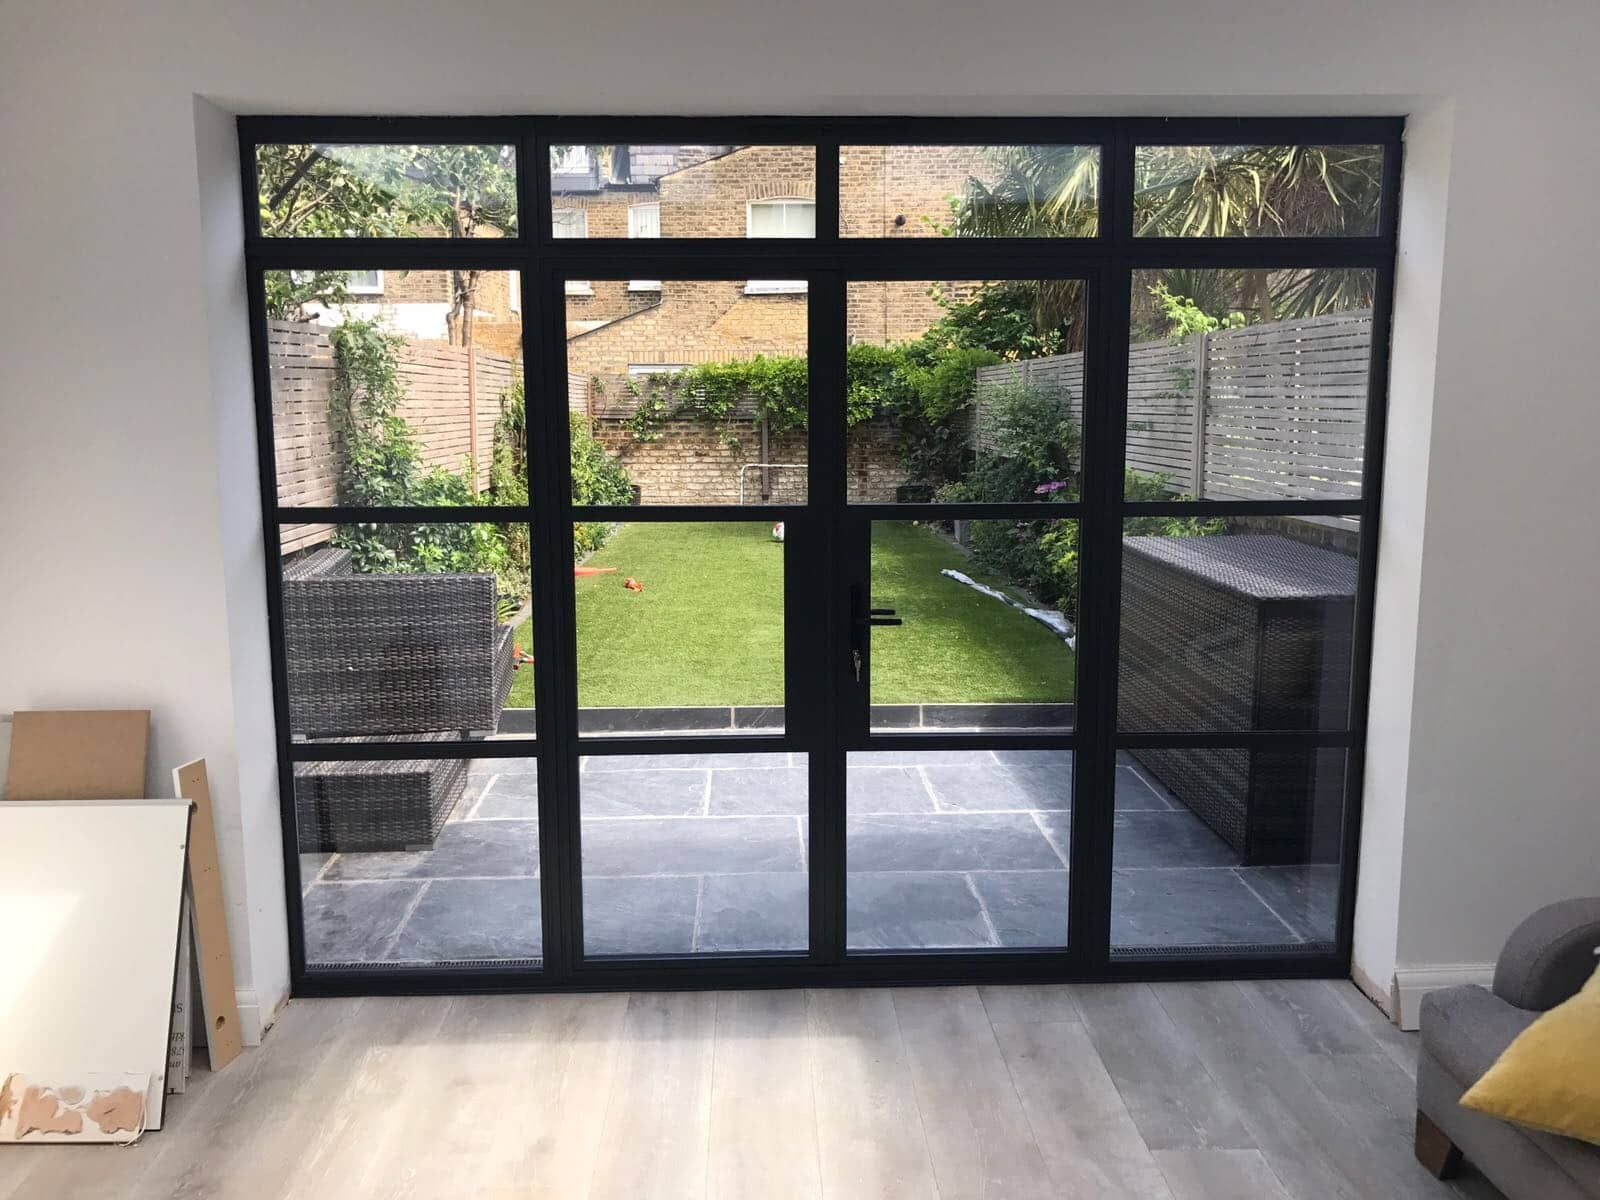 Aluminium steel replacement windows and doors give you all